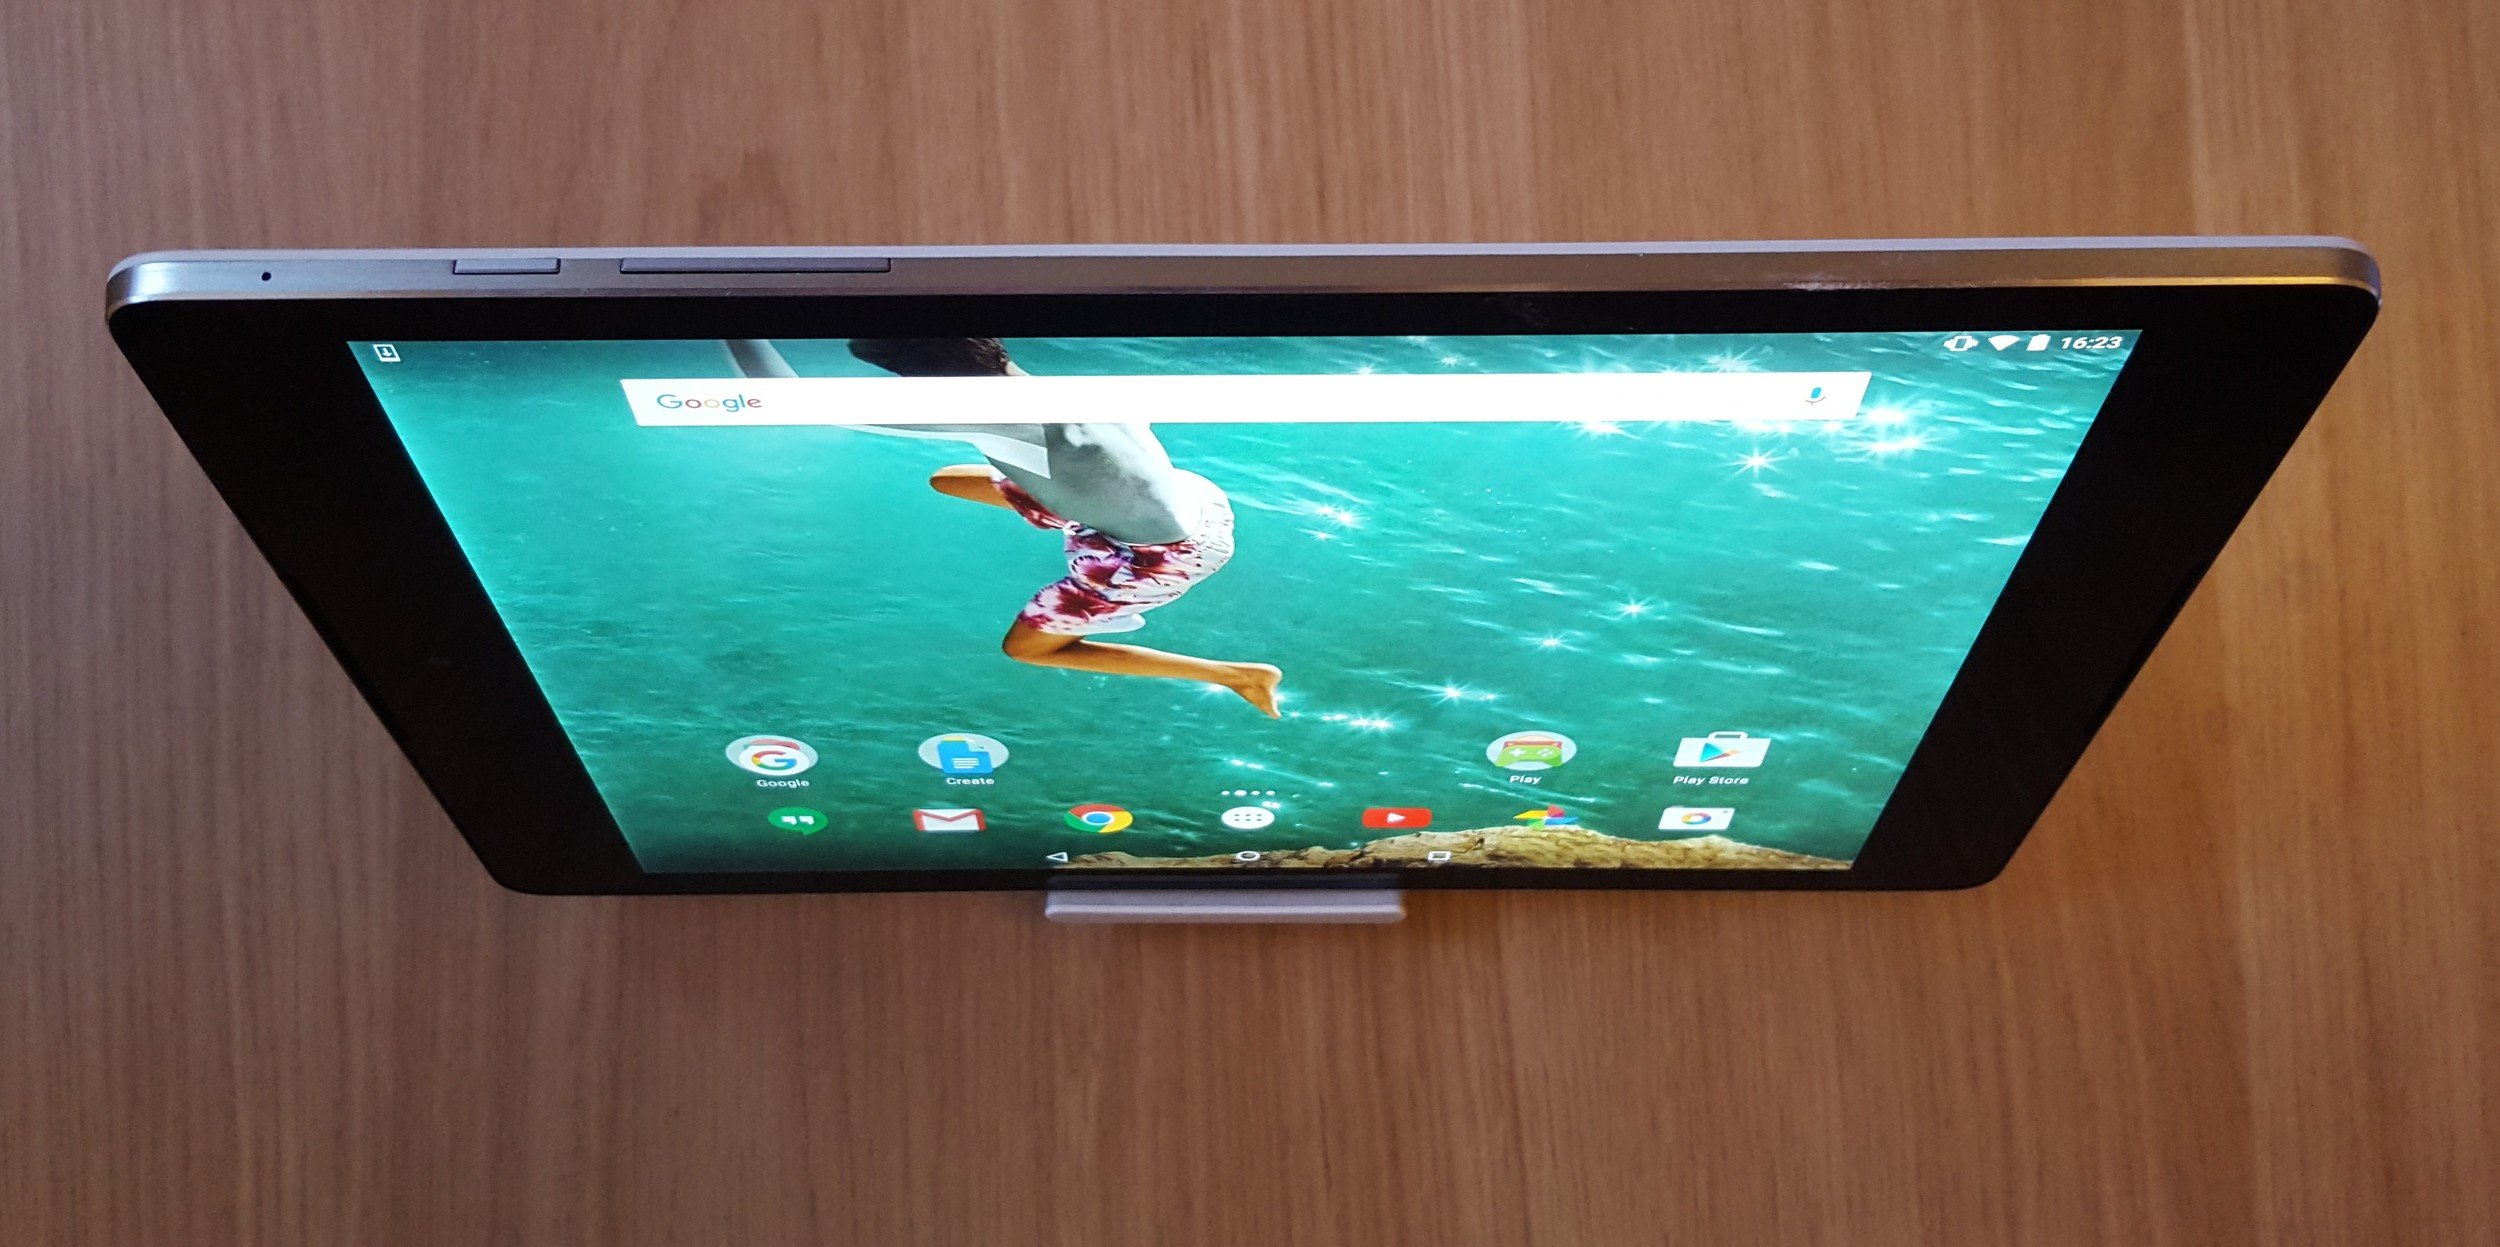 The Nexus 9 is an excellent media consumption device. Great Stereo sound is a bonus